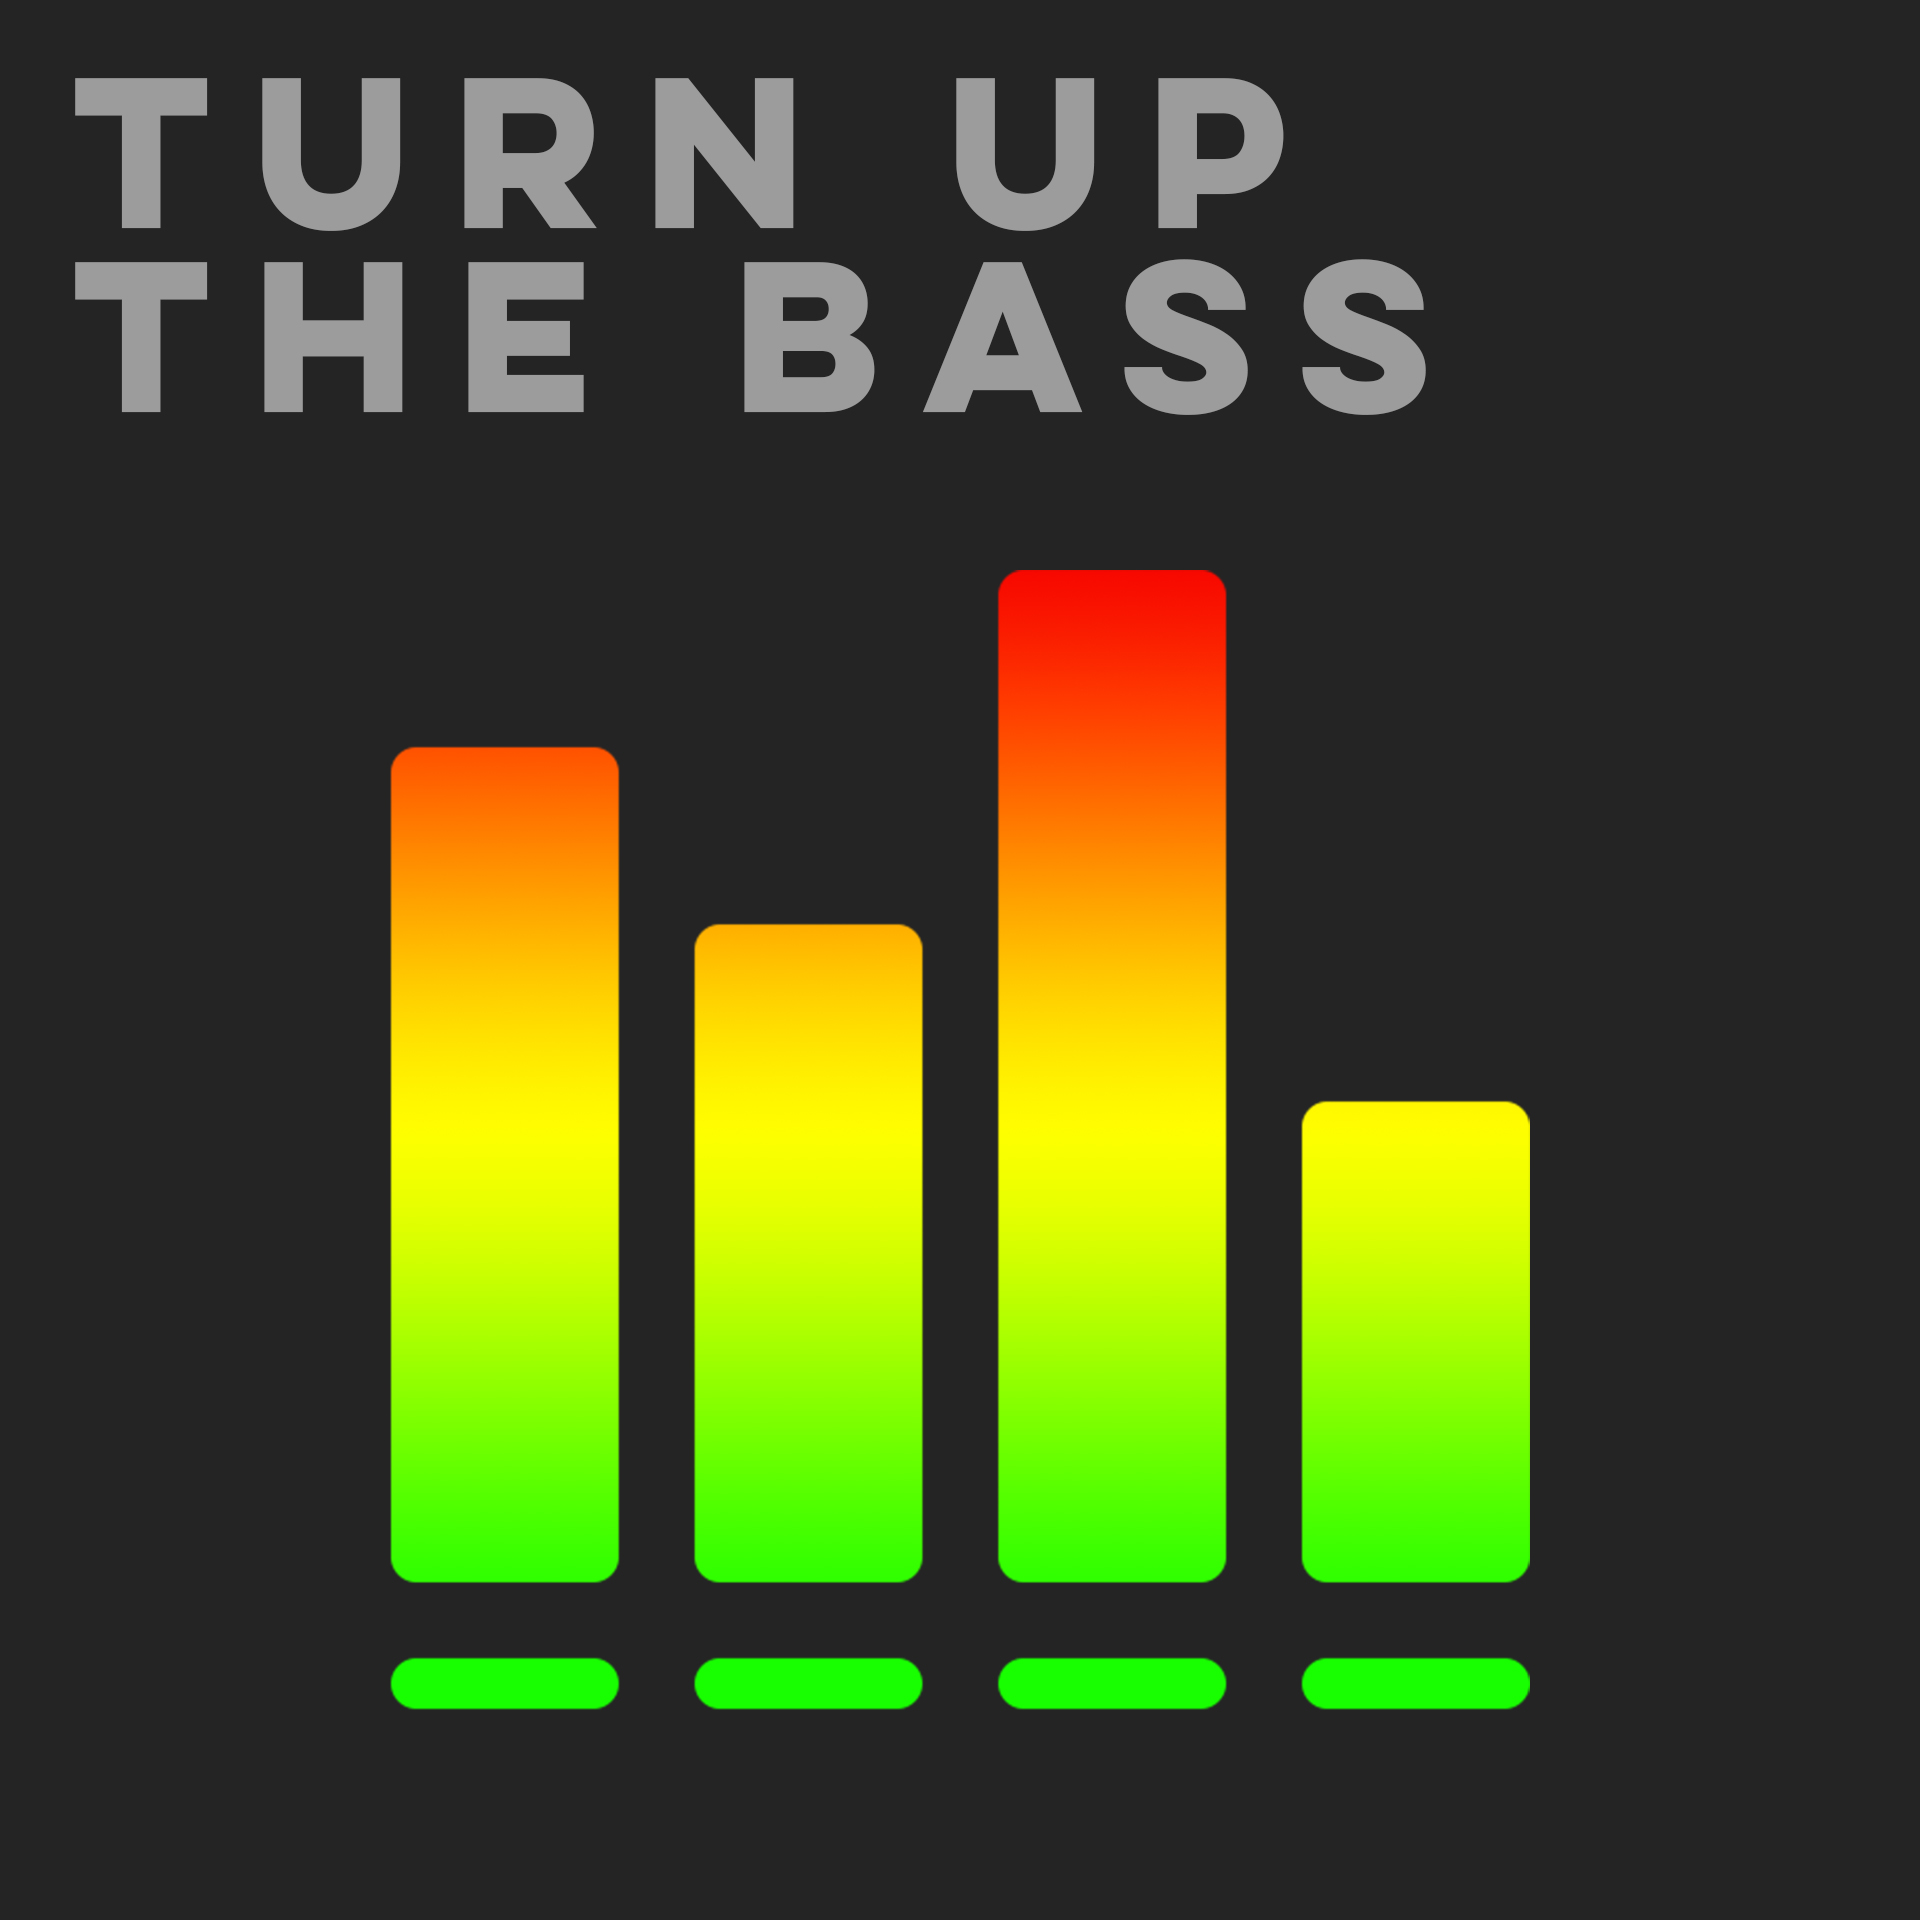 Turn Up The Bass art.jpg